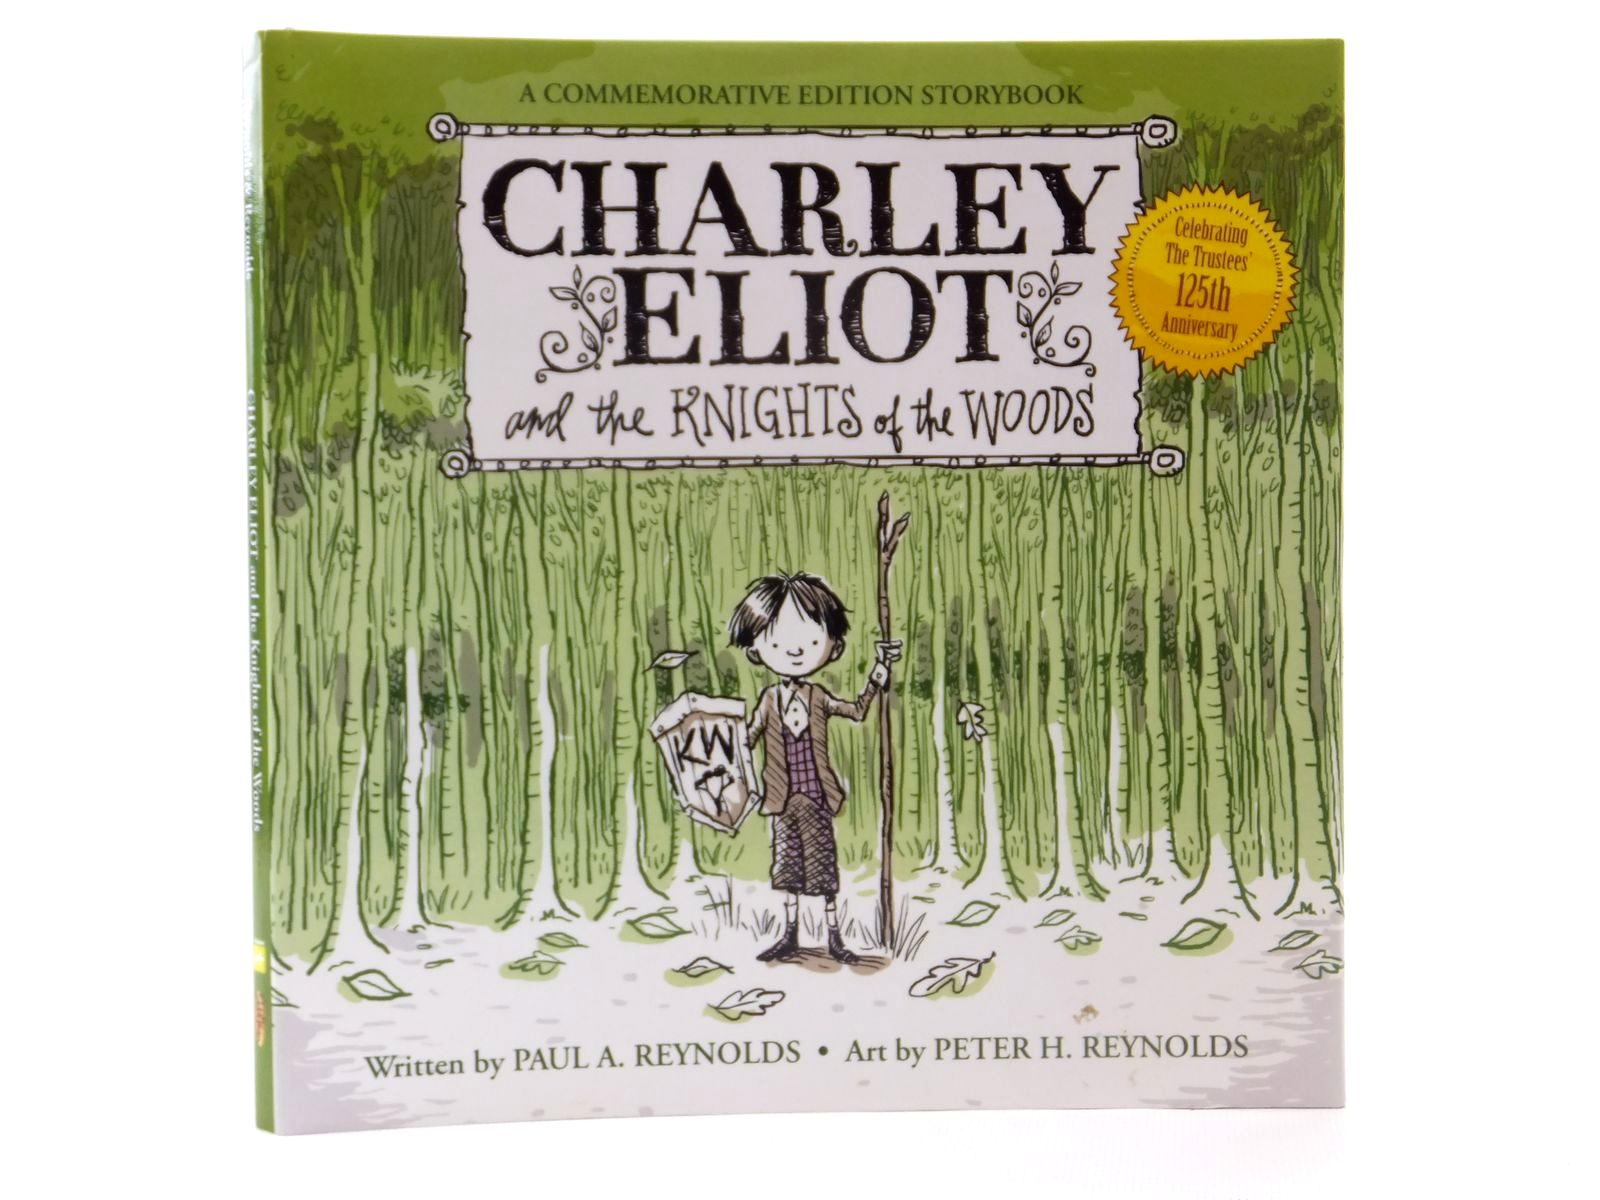 Photo of CHARLEY ELIOT AND THE KNIGHTS OF THE WOODS written by Reynolds, Paul A. illustrated by Reynolds, Peter H. published by Fable Vision (STOCK CODE: 2122345)  for sale by Stella & Rose's Books